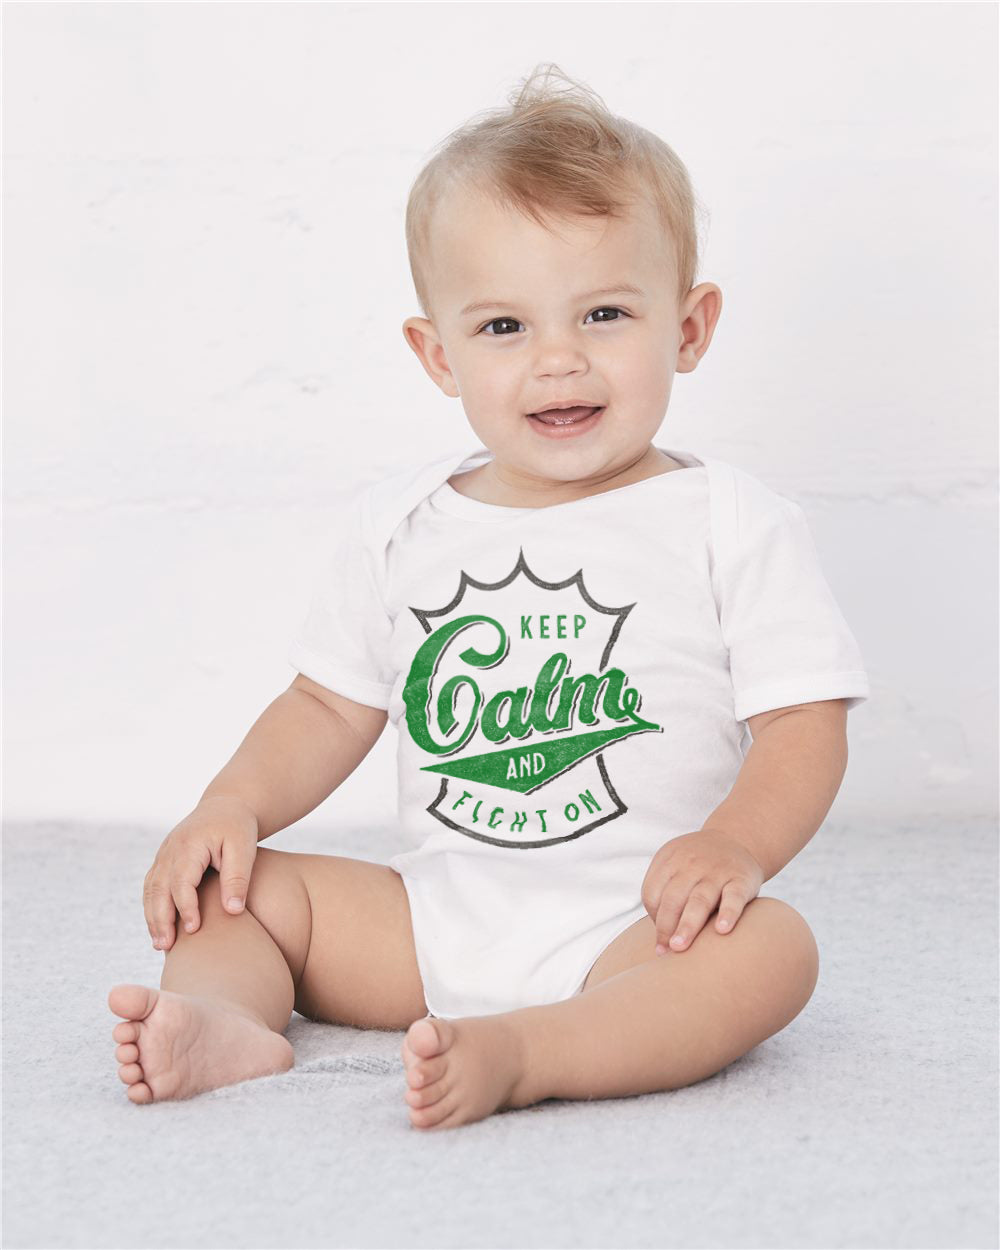 Keep Calm White Baby Cozy Graphic Tee Onesie